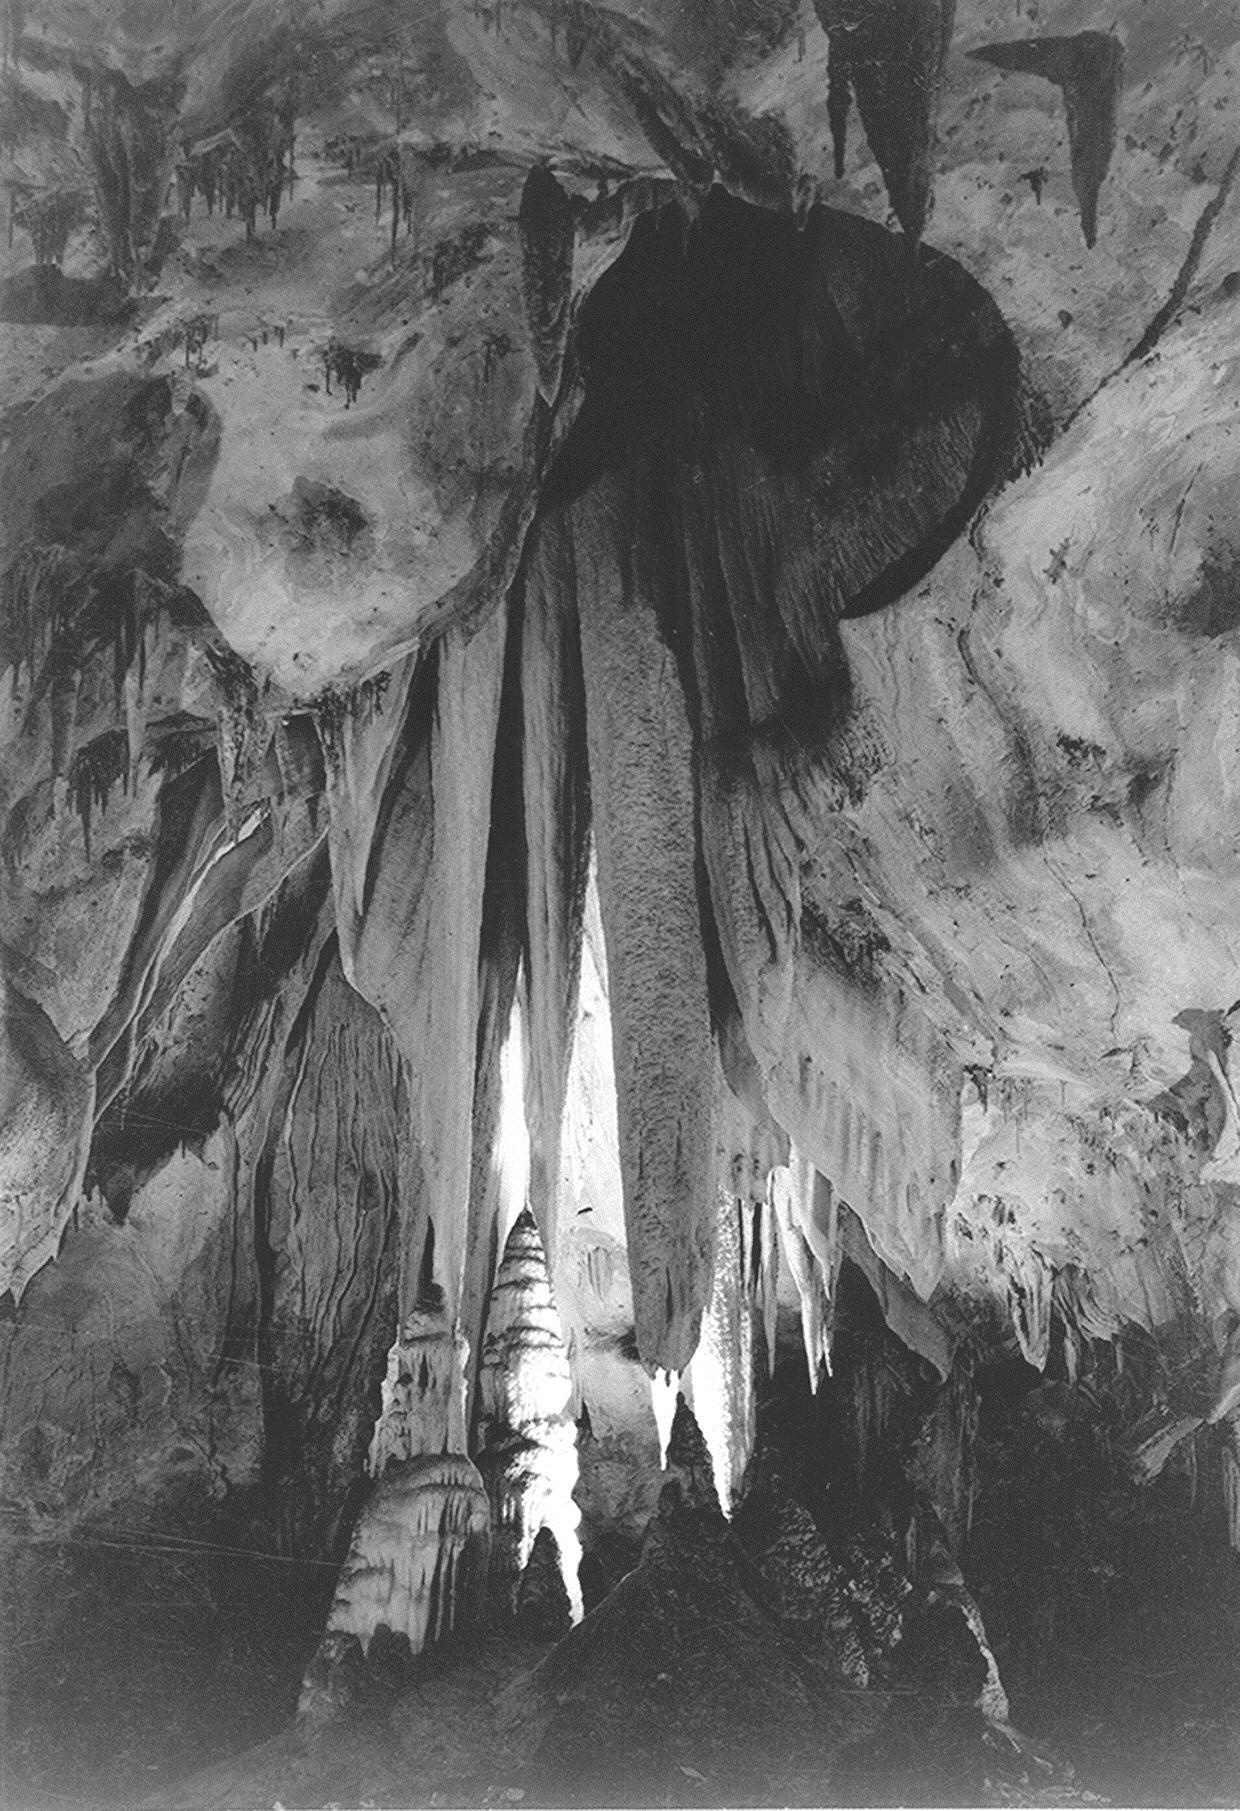 Onyx drapes in the Papoose Room, Carlsbad Caverns, 1942